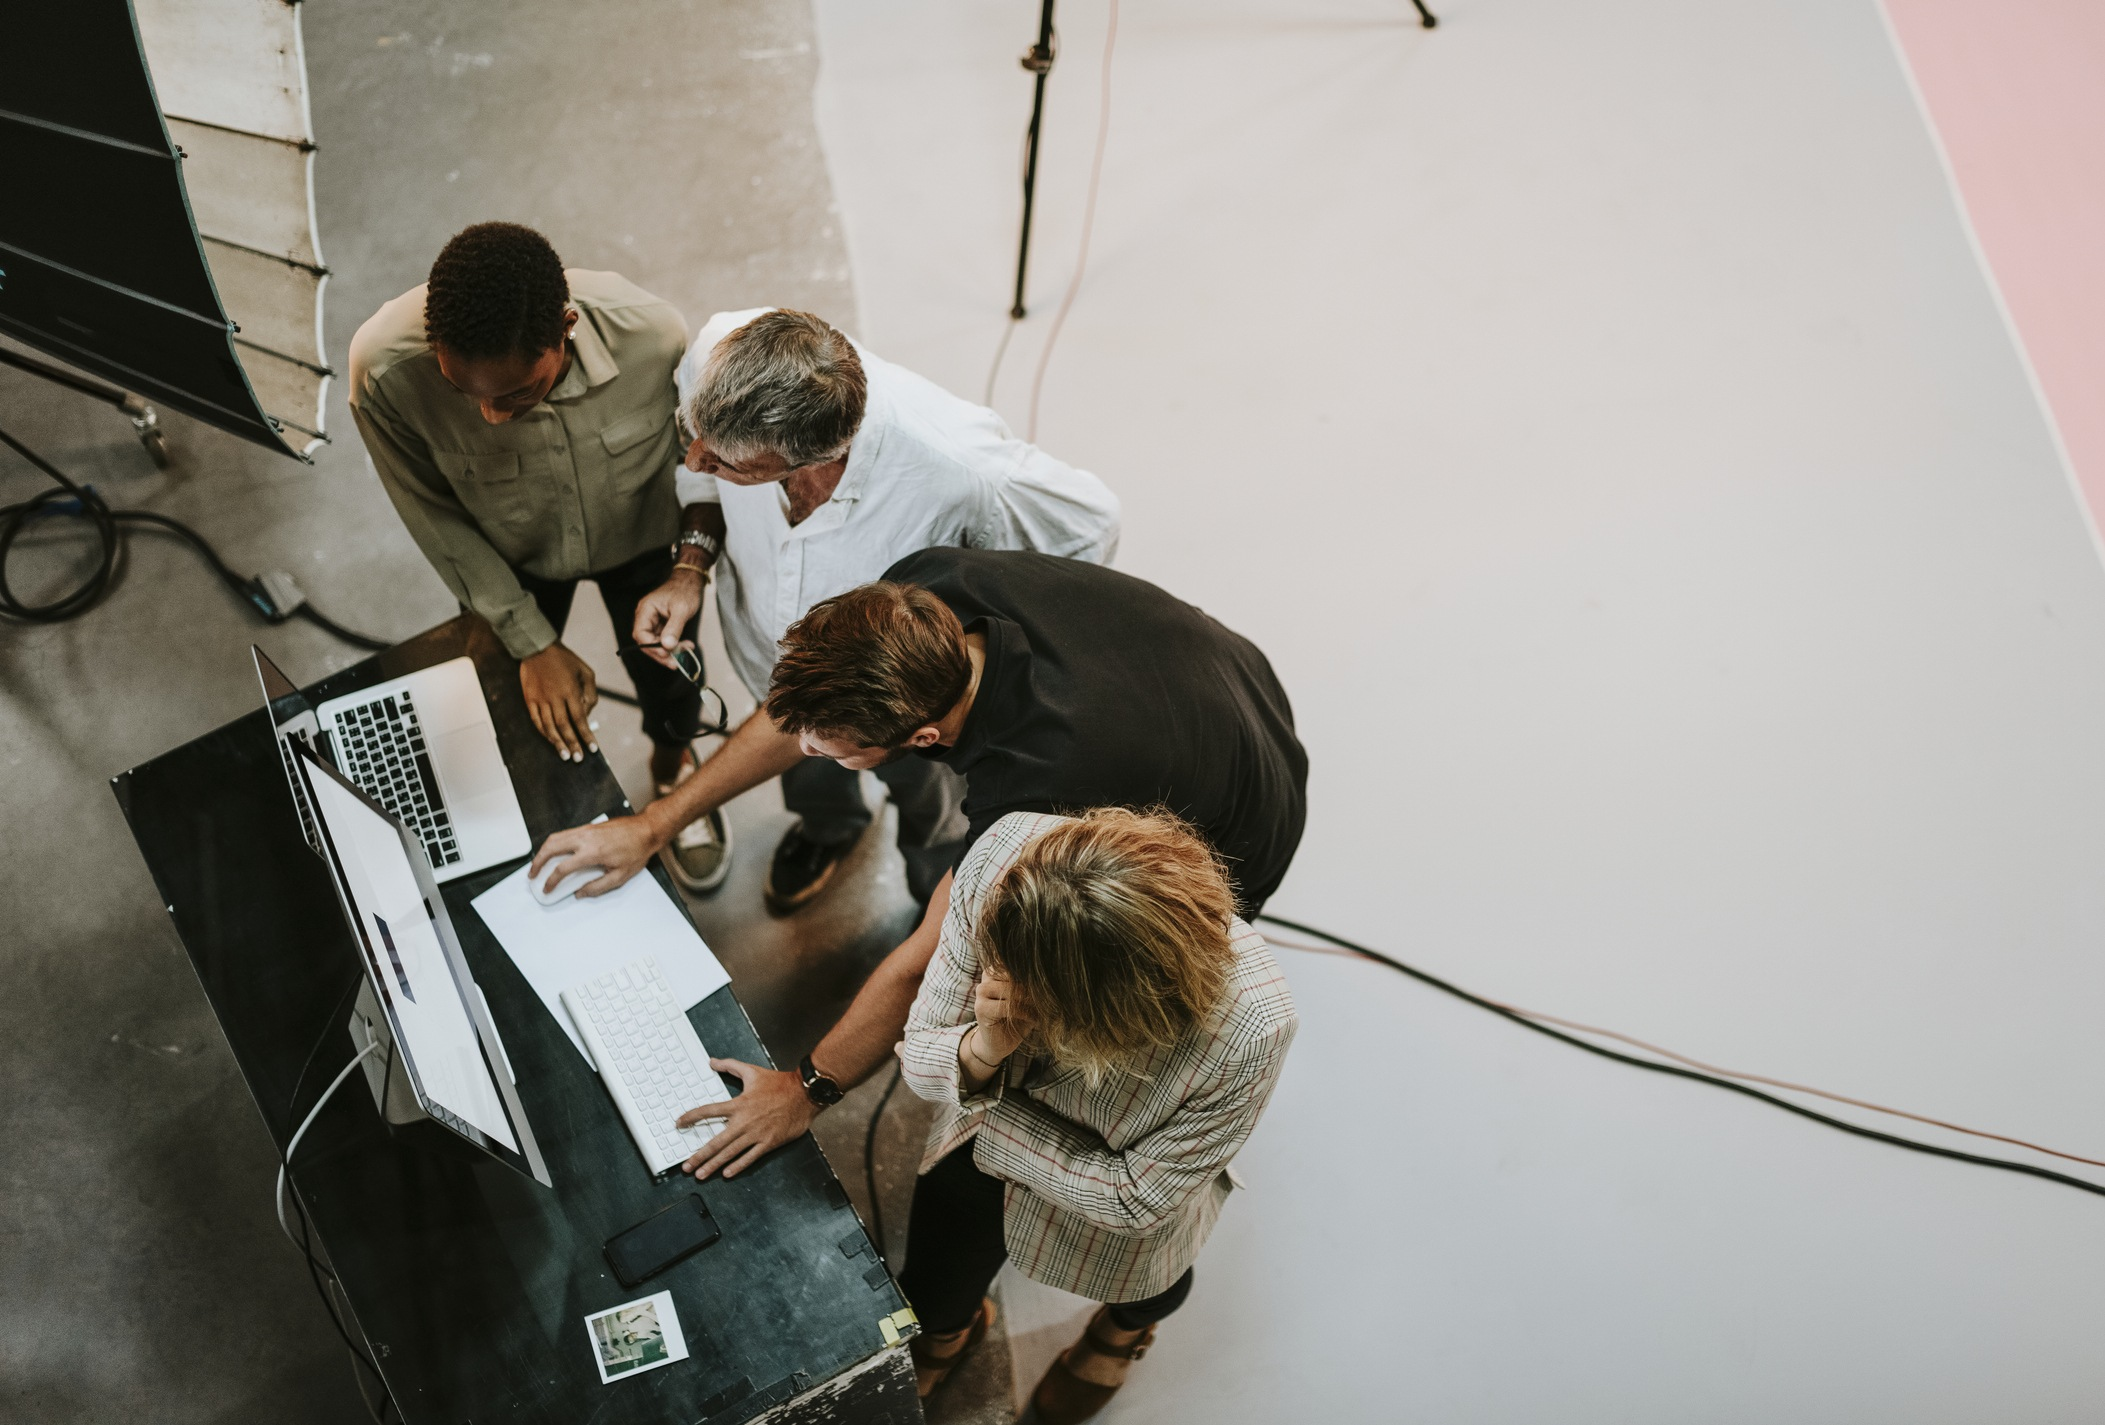 5 things to research before starting a photography business